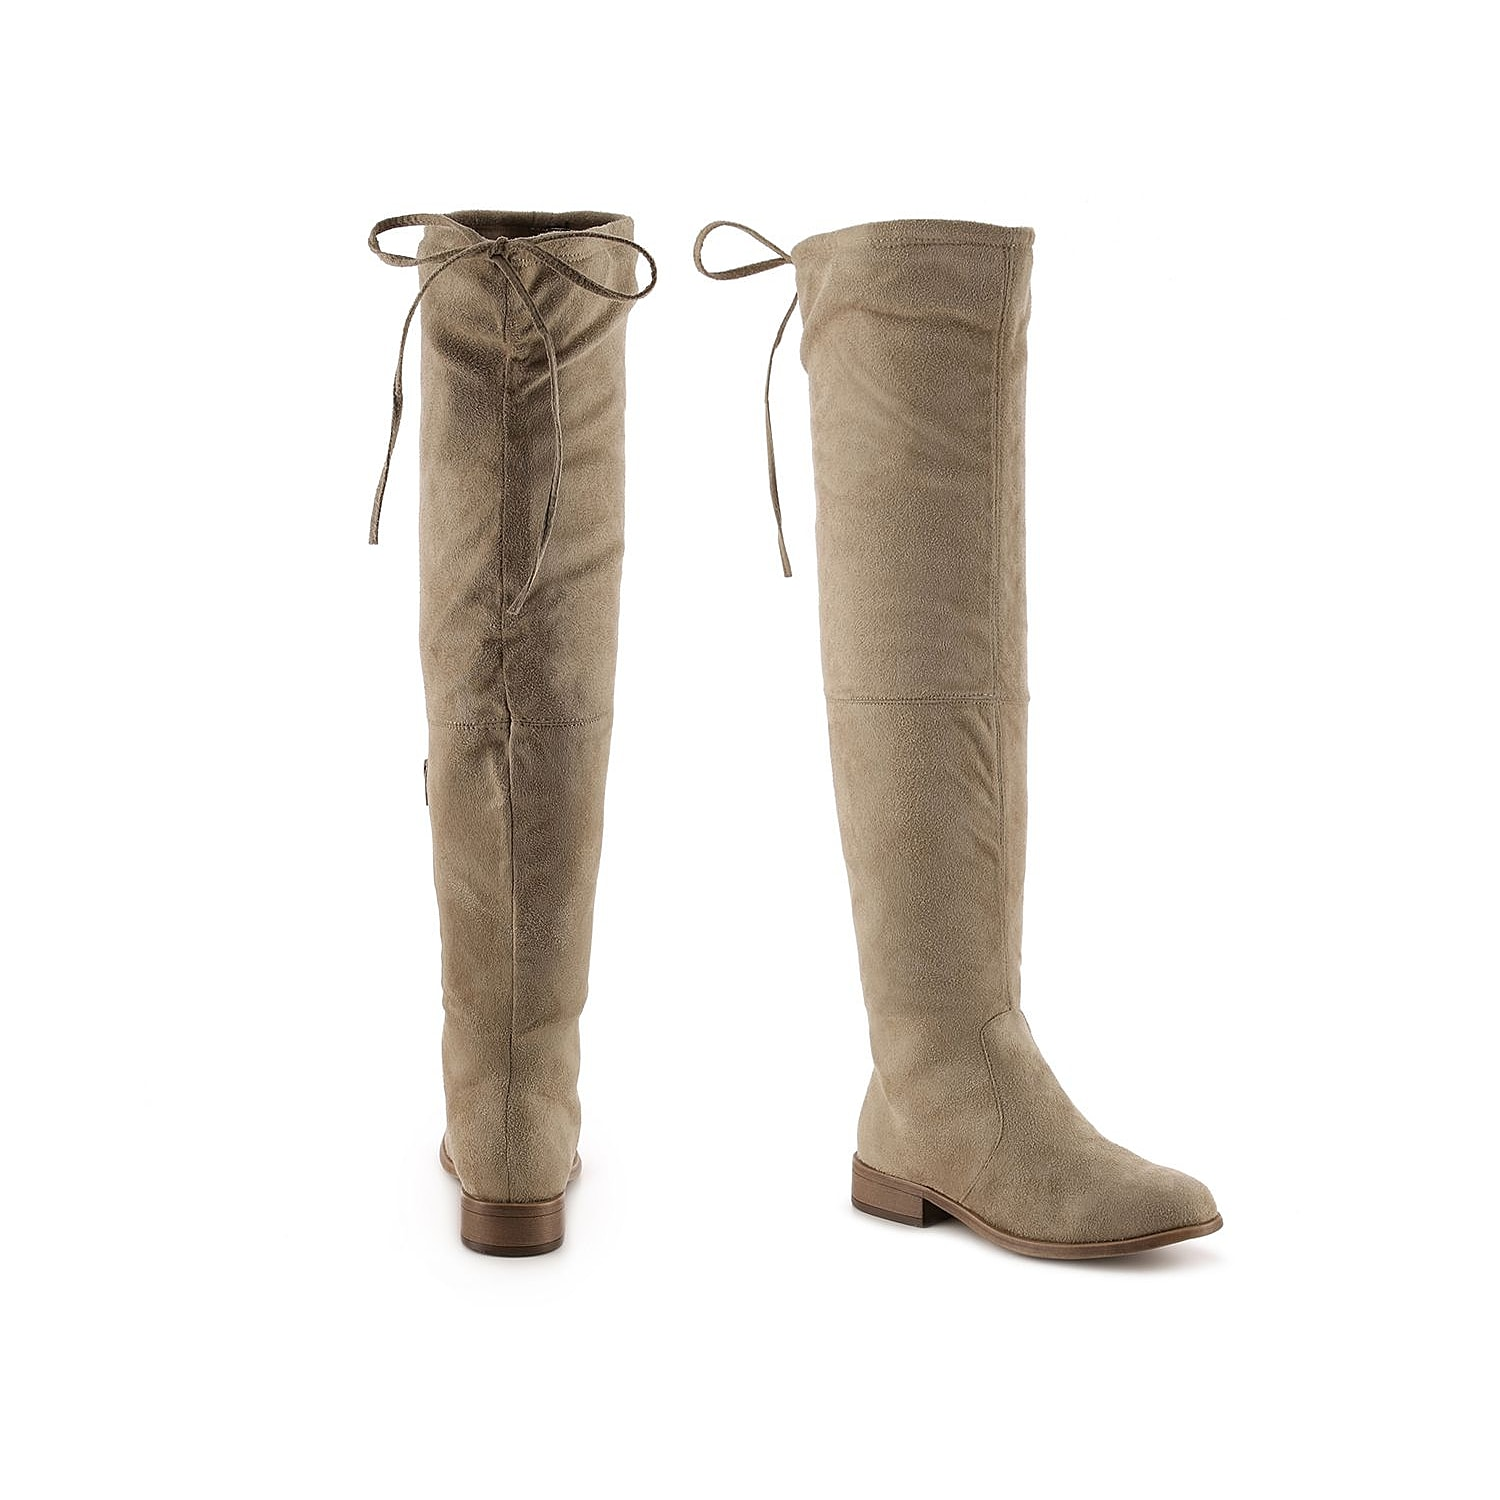 Add to your on-trend wardrobe with the Mount knee high boots from Journee Collection. Zip up in these versatile boots and pair with a mini skirt or skinny jeans. Click here for Boot Measuring Guide.